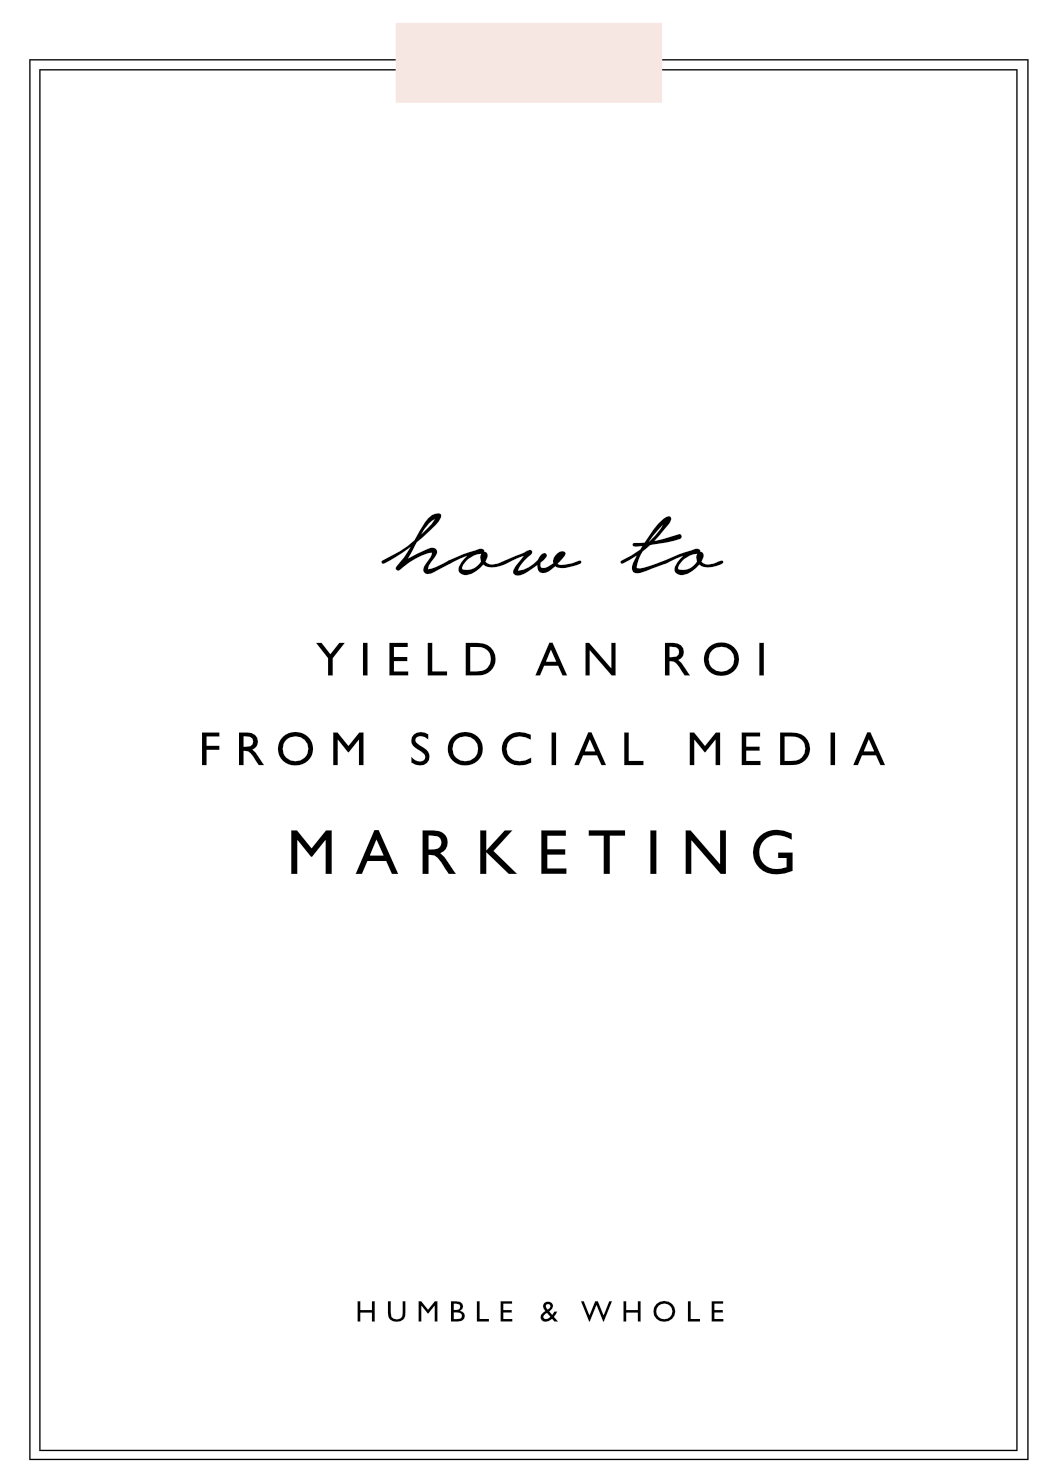 Social media marketing is one of the most valuable ways to promote yourself as an online entrepreneur. Are you getting a return on investment with your social media presence? Social media can absolutely help you meet your business goals, but if you're struggling to reach them, it's time to audit your social presence.